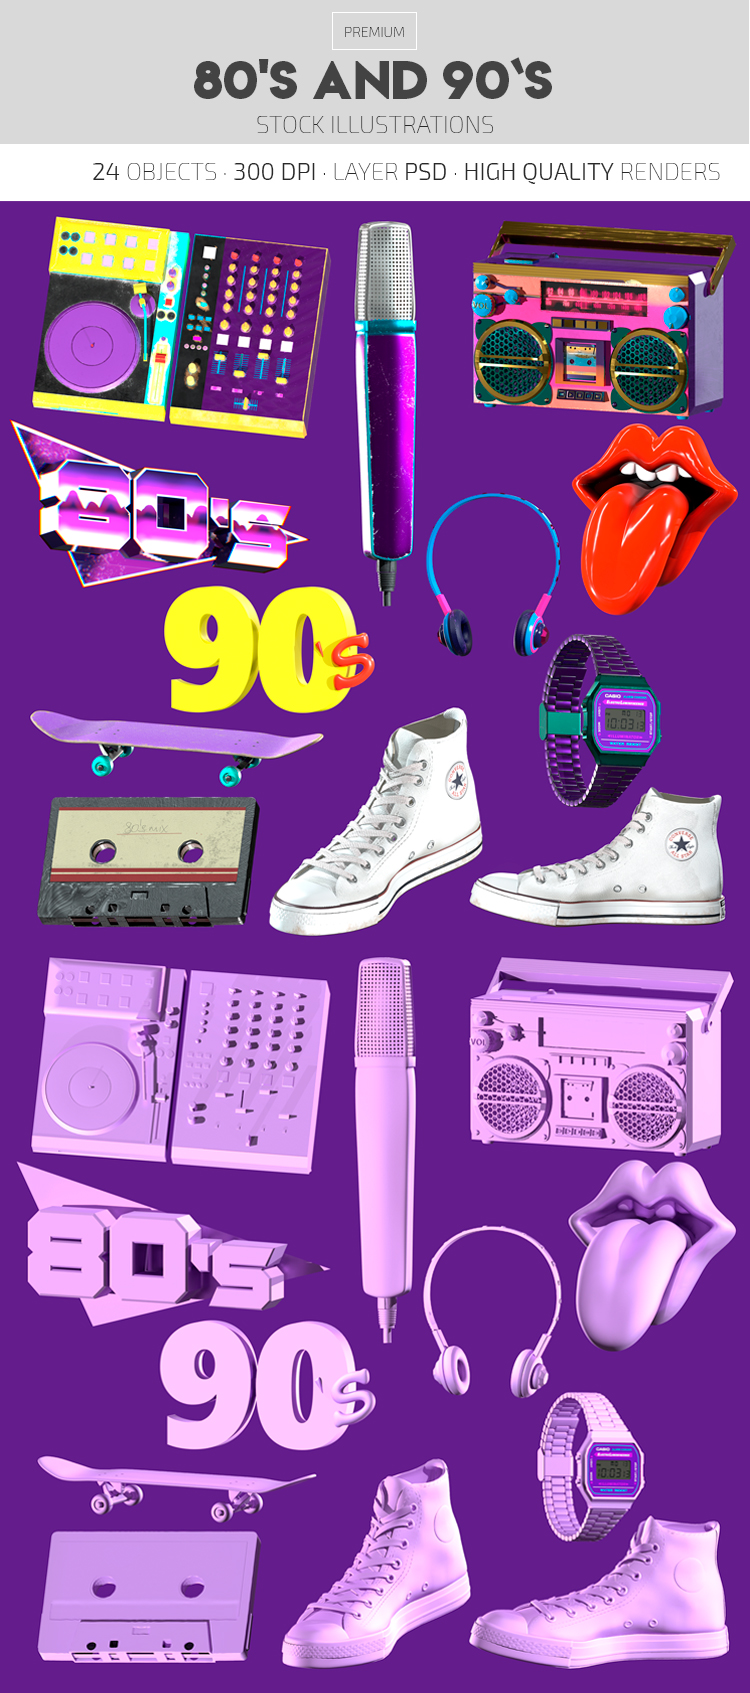 80s and 90s – Premium 3d Render Templates